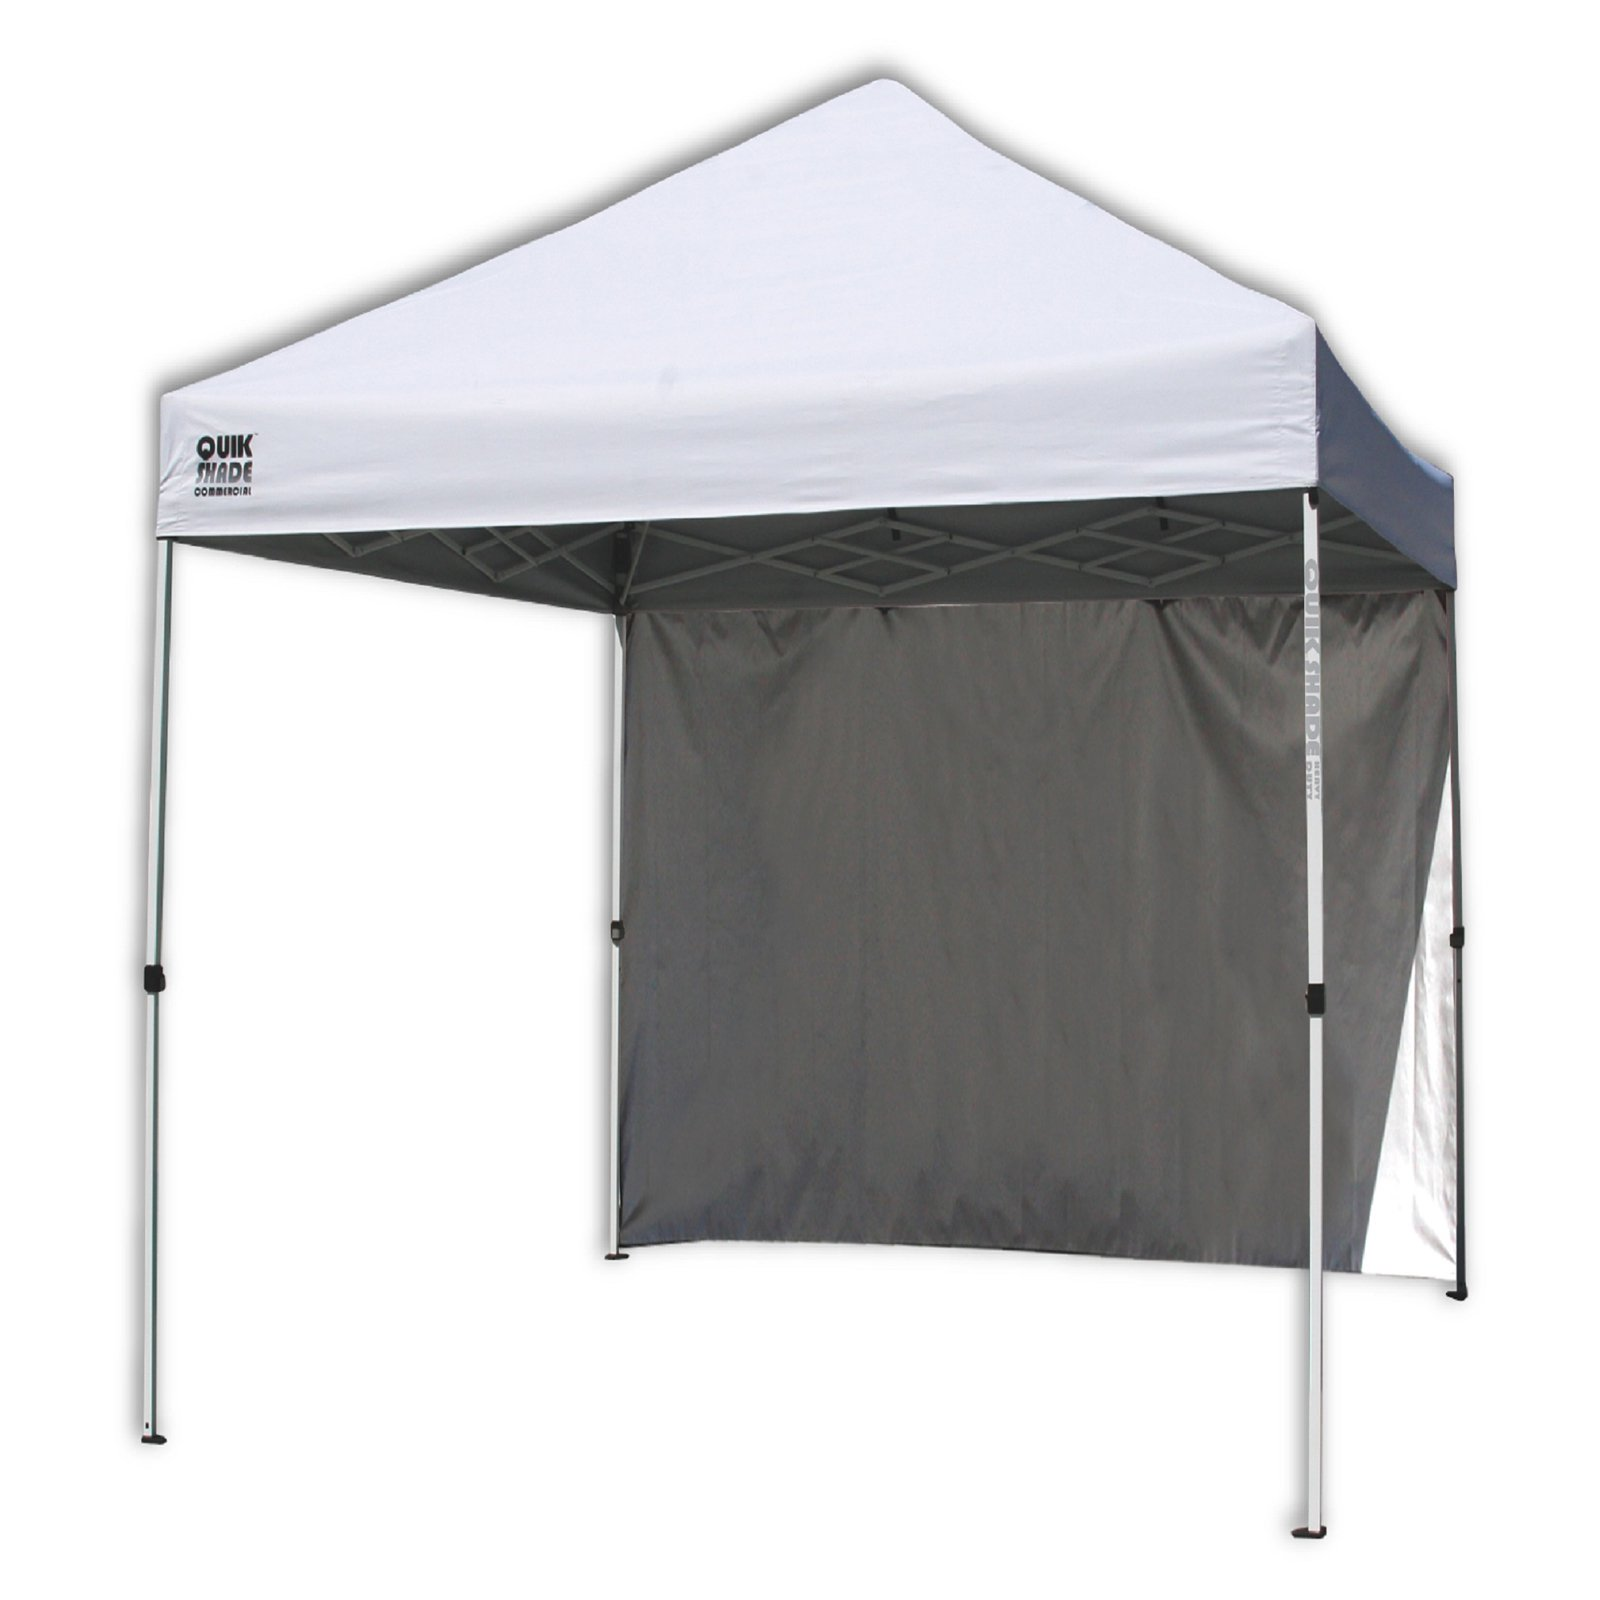 Quik Shade Canopy 10' x 10' Wall Panel by